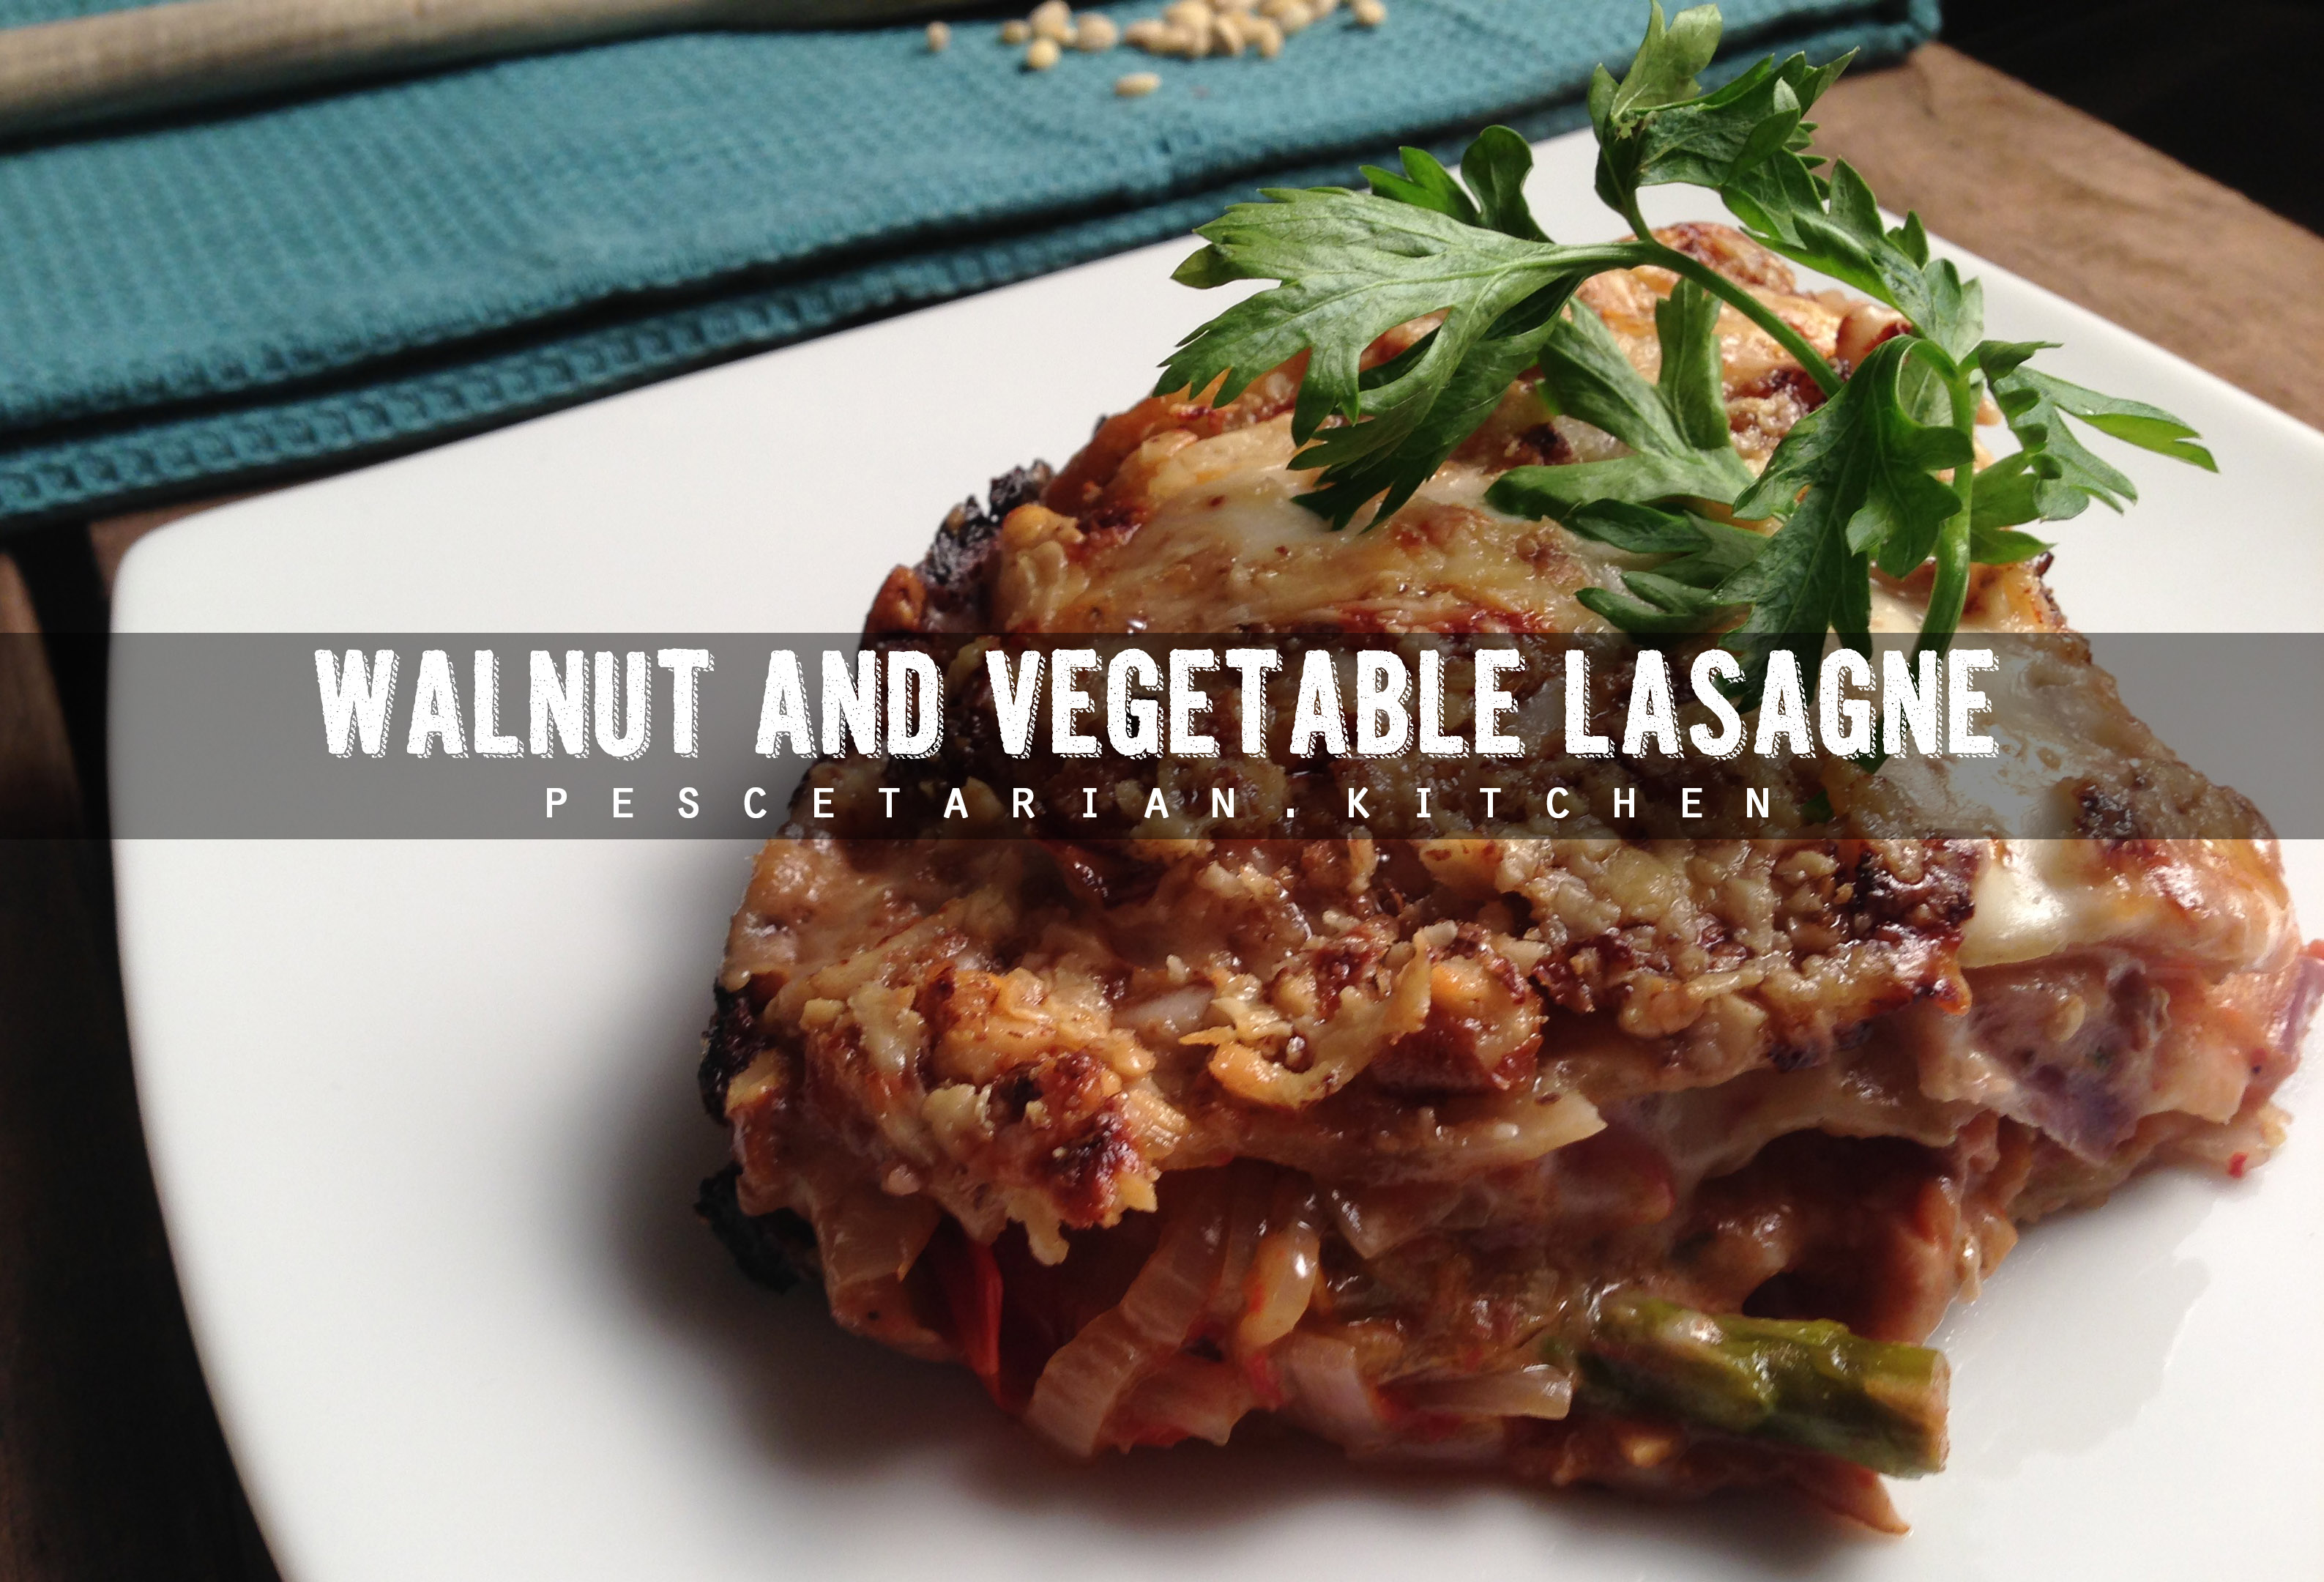 Walnut and Vegetable Lasagne